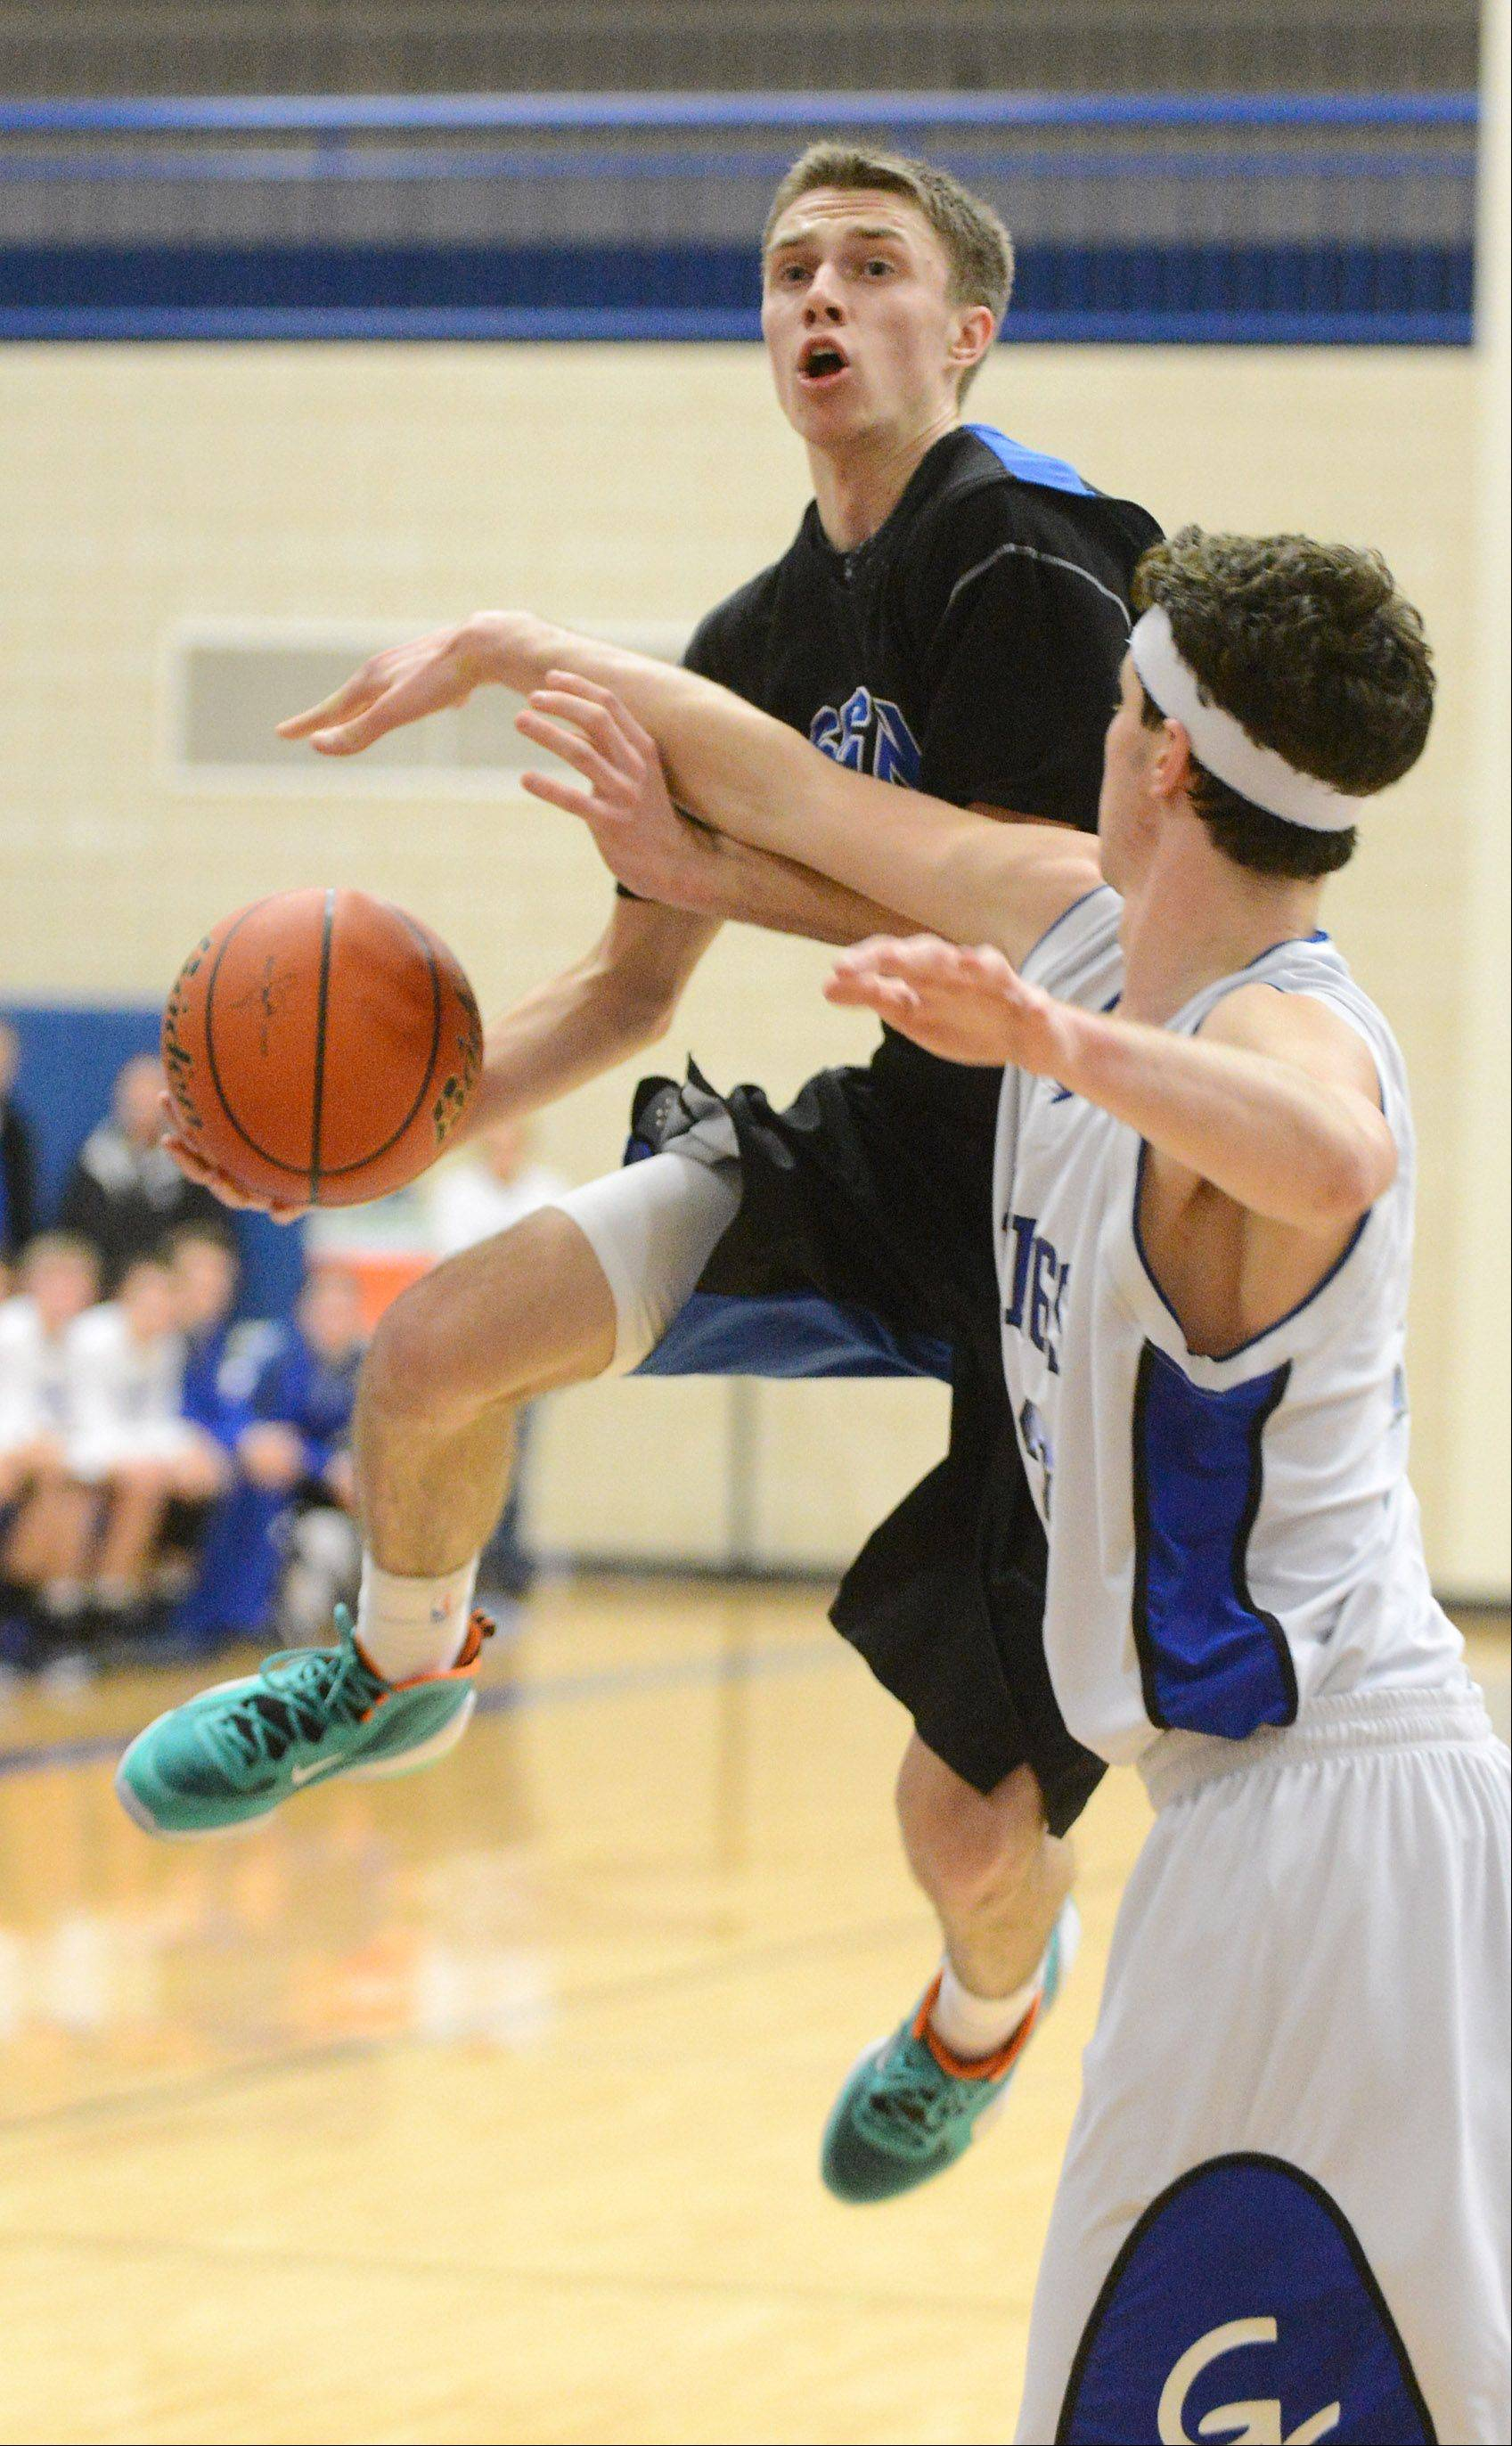 St. Charles North's Alec Goetz (1) drives to the basket as he is defended by Geneva's Mike Landi (52) during Friday's game in Geneva. ¬